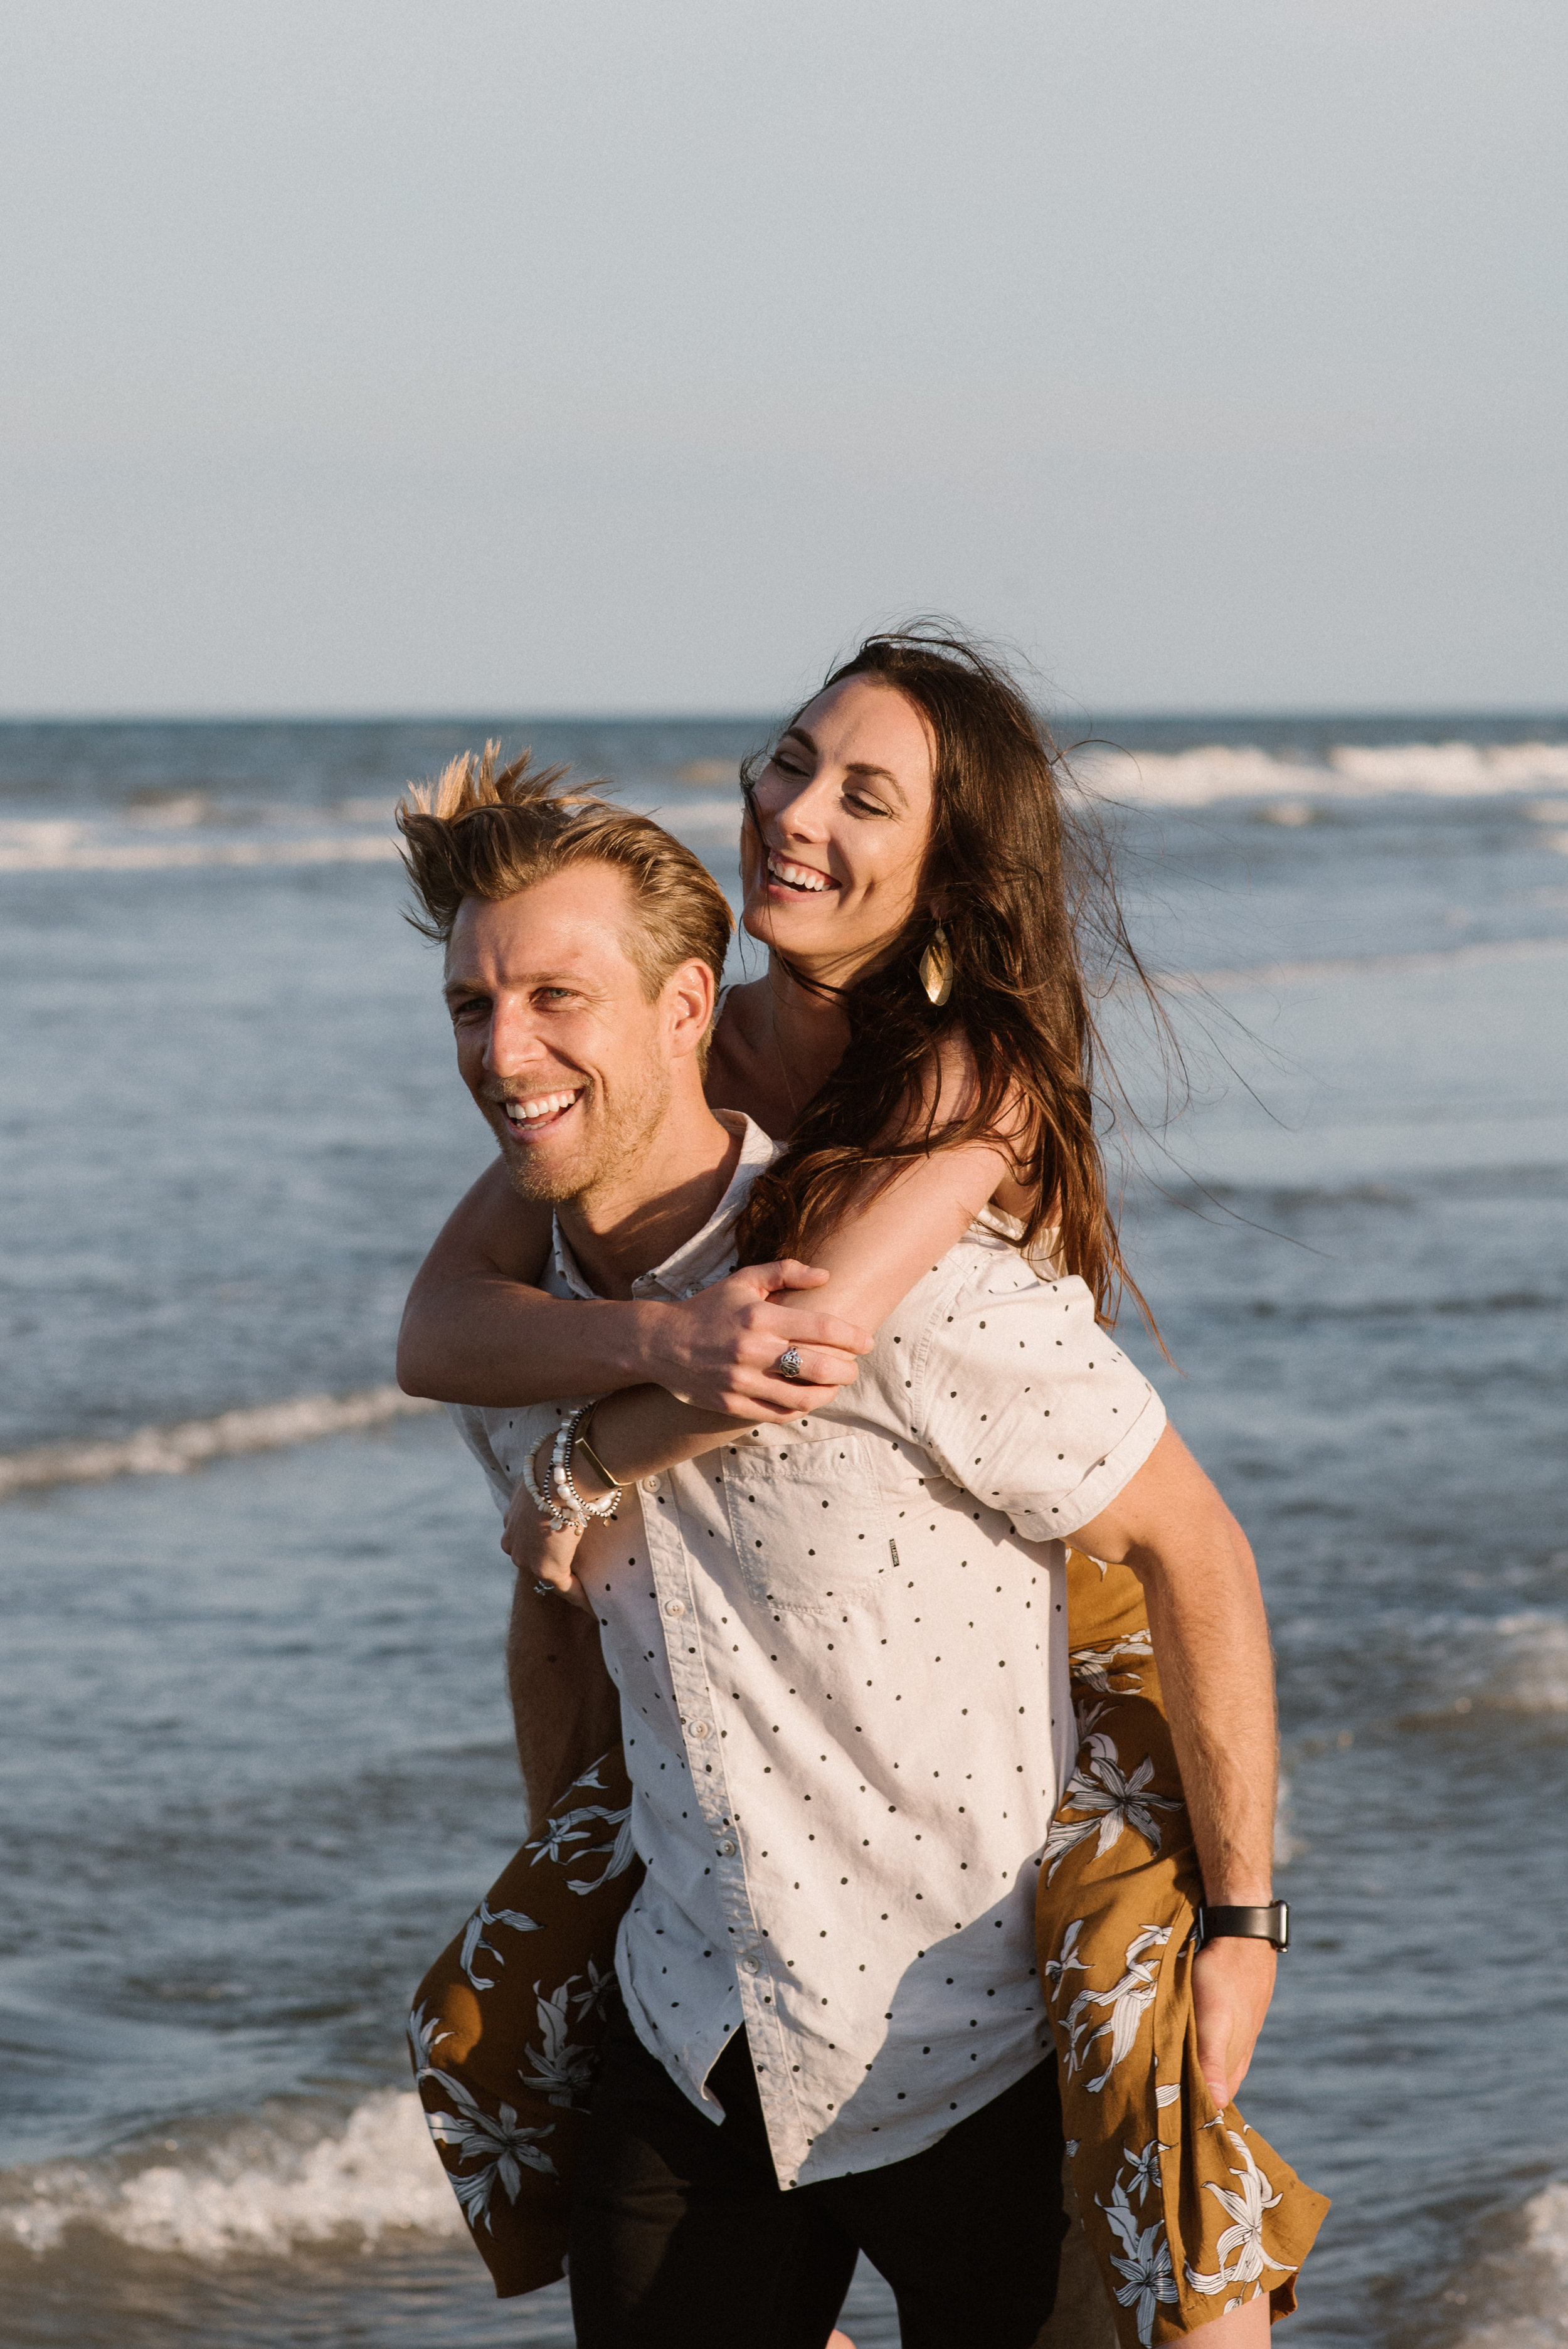 atlantic-beach-engagement-photos-heather-and-cody-2.jpg